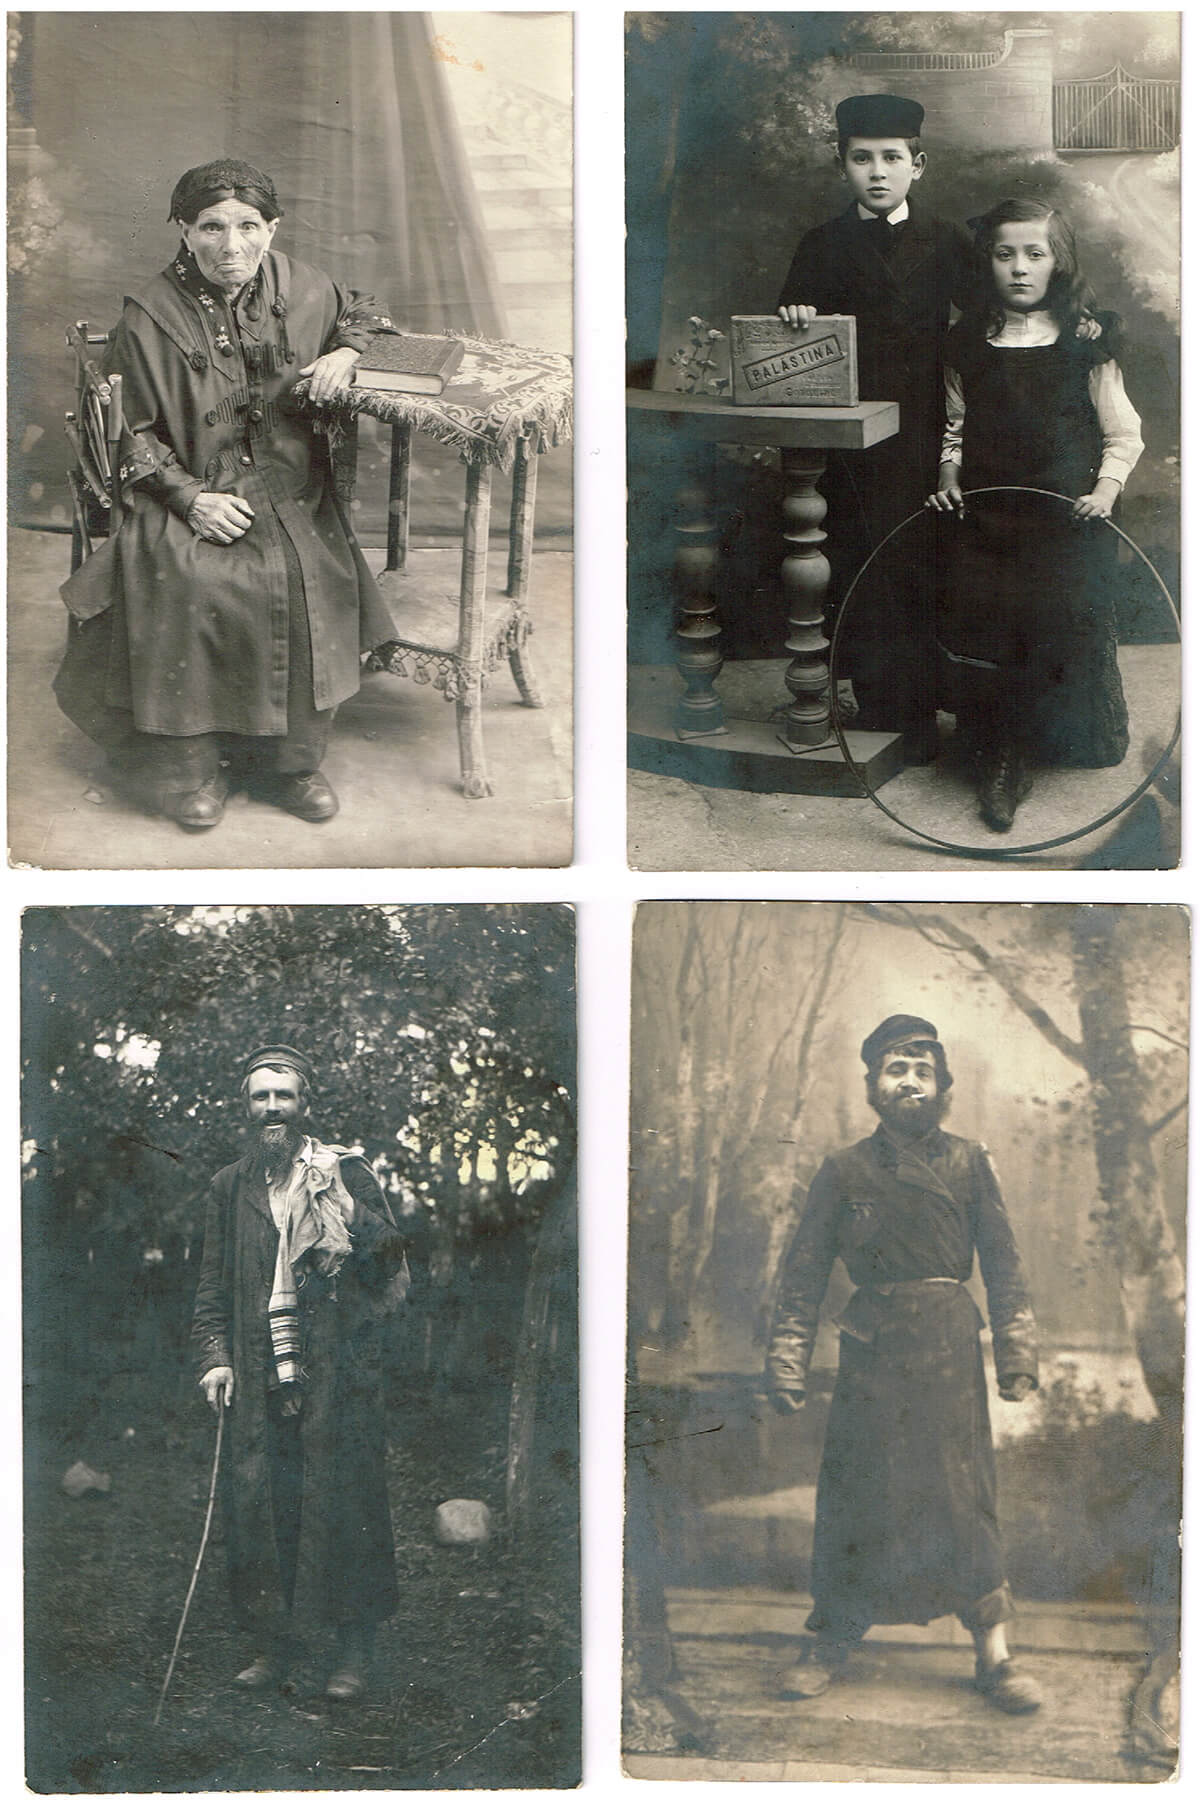 187. A Rare Collection of 27 Postcards of Lithuanian And Polish Jews